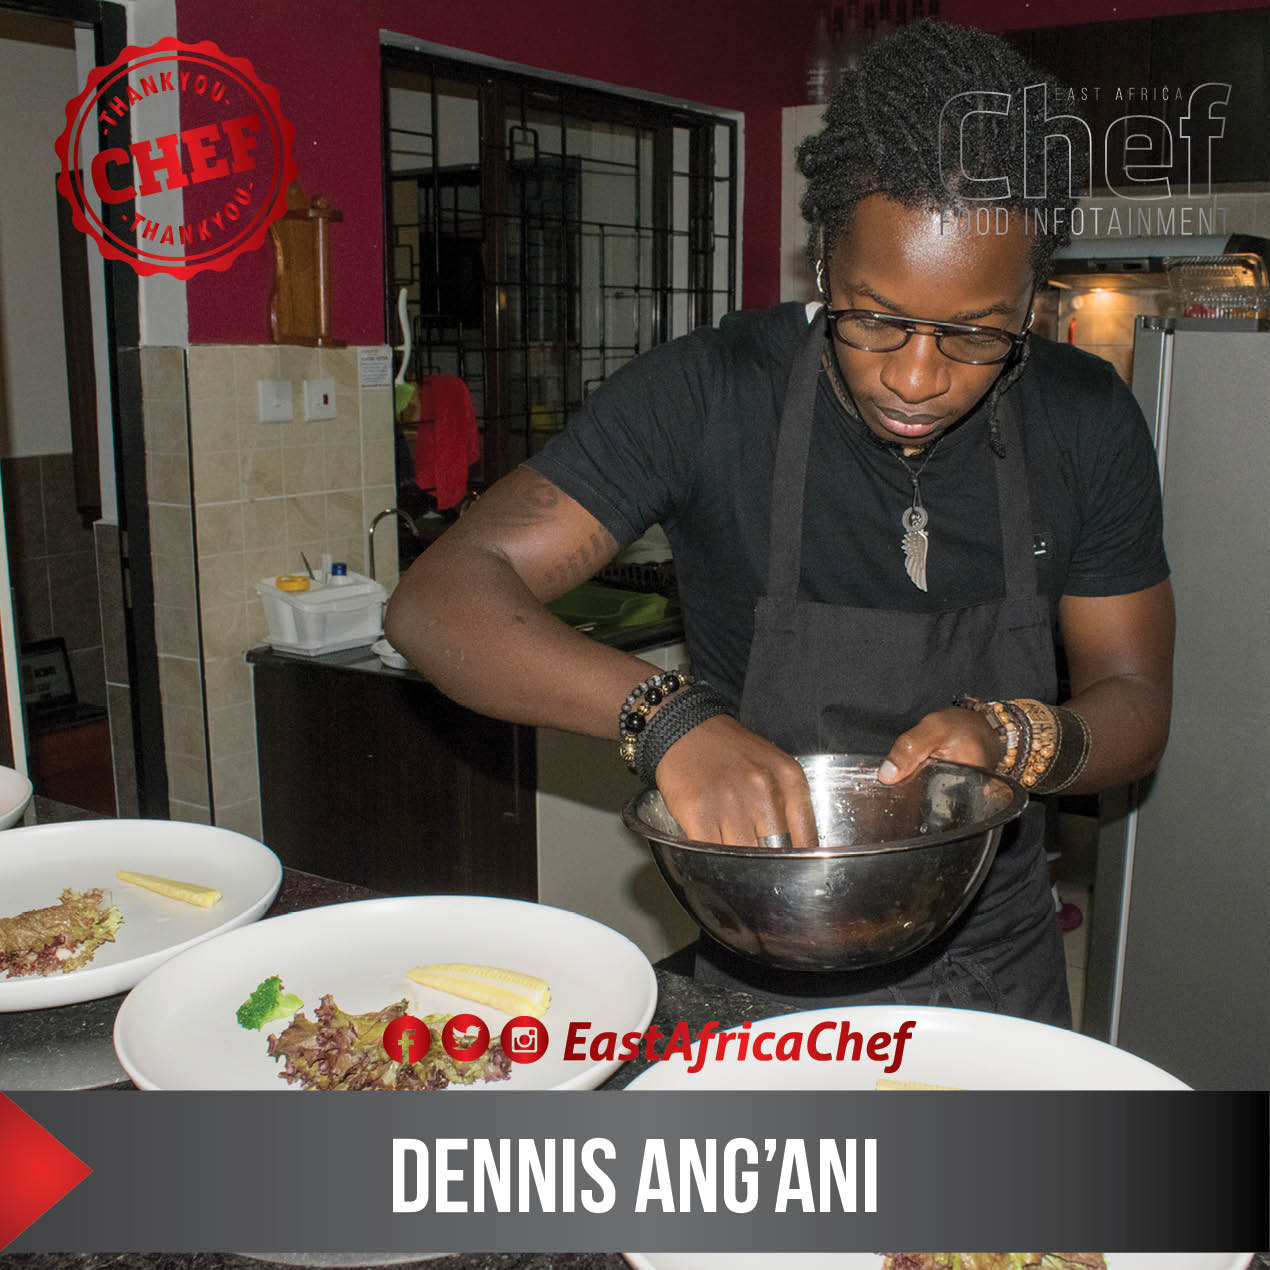 Celebrate East Africa Chef13